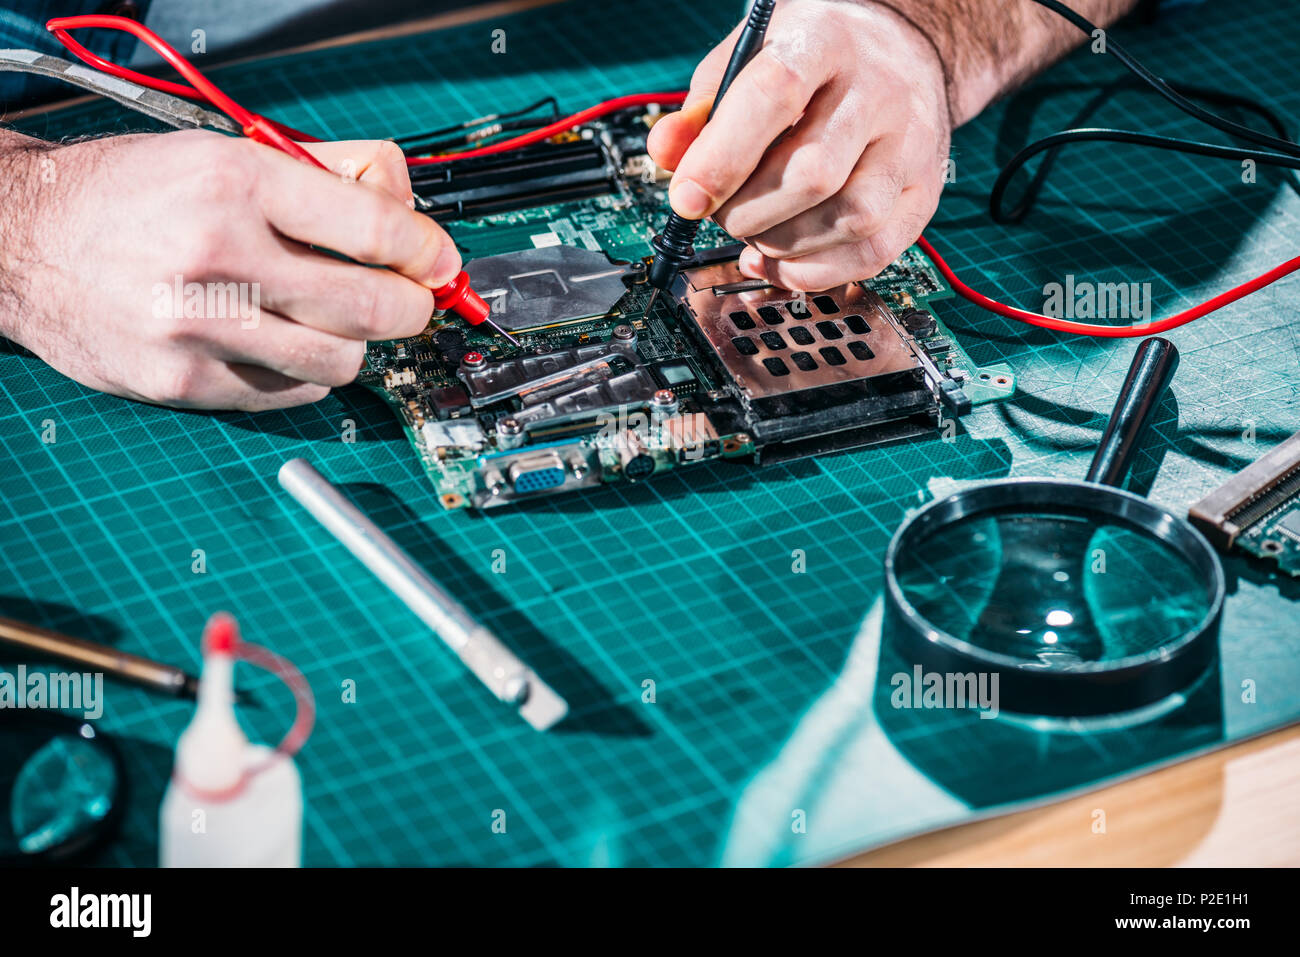 Circuit Testing Board Stock Photos Close Up View Of Male Engineer Image